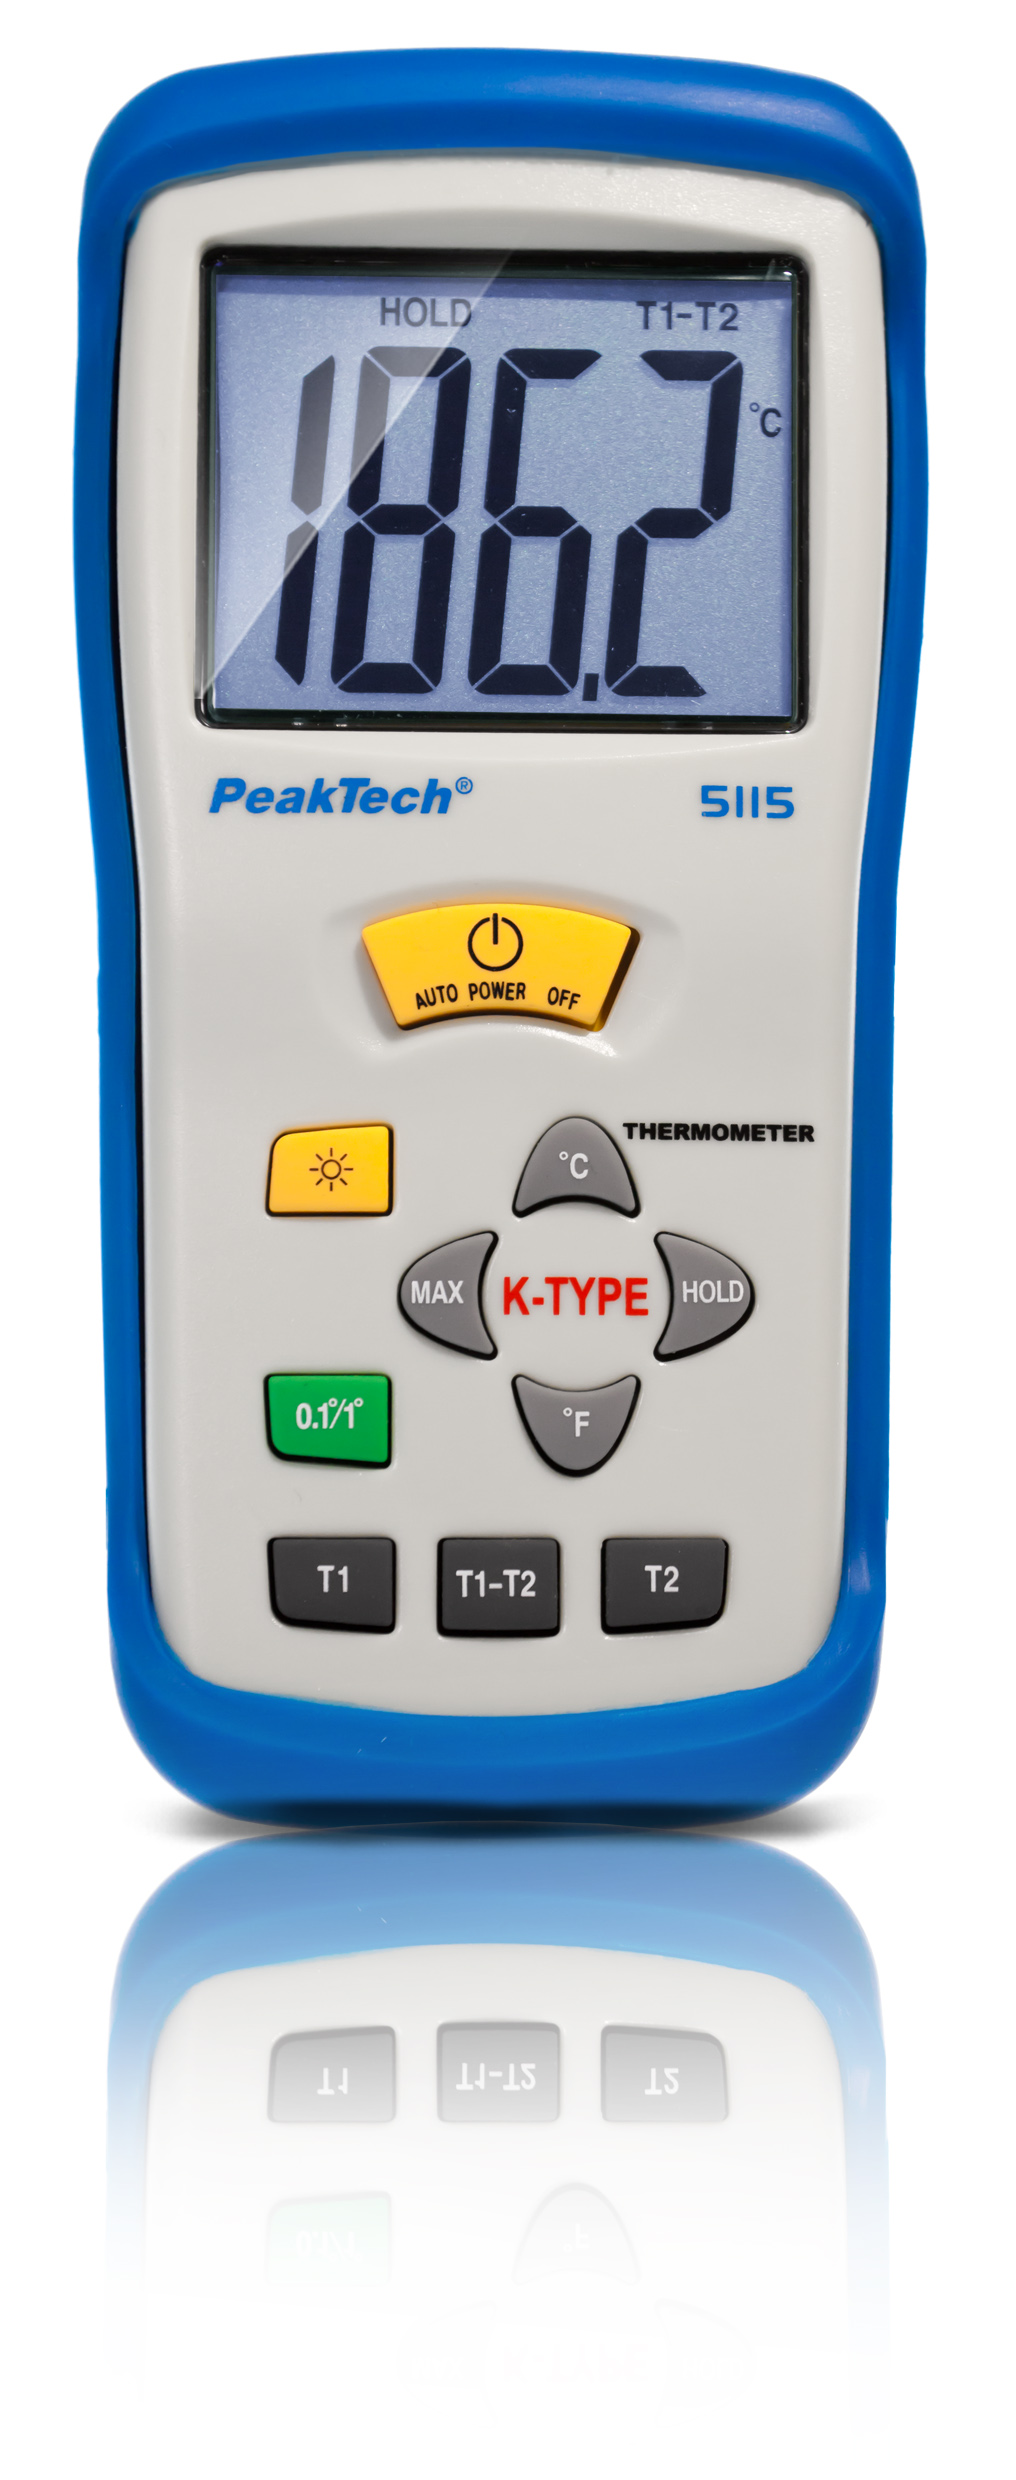 «PeakTech® P 5115» Digital-Thermometer K-Type / -50 ... +1300°C